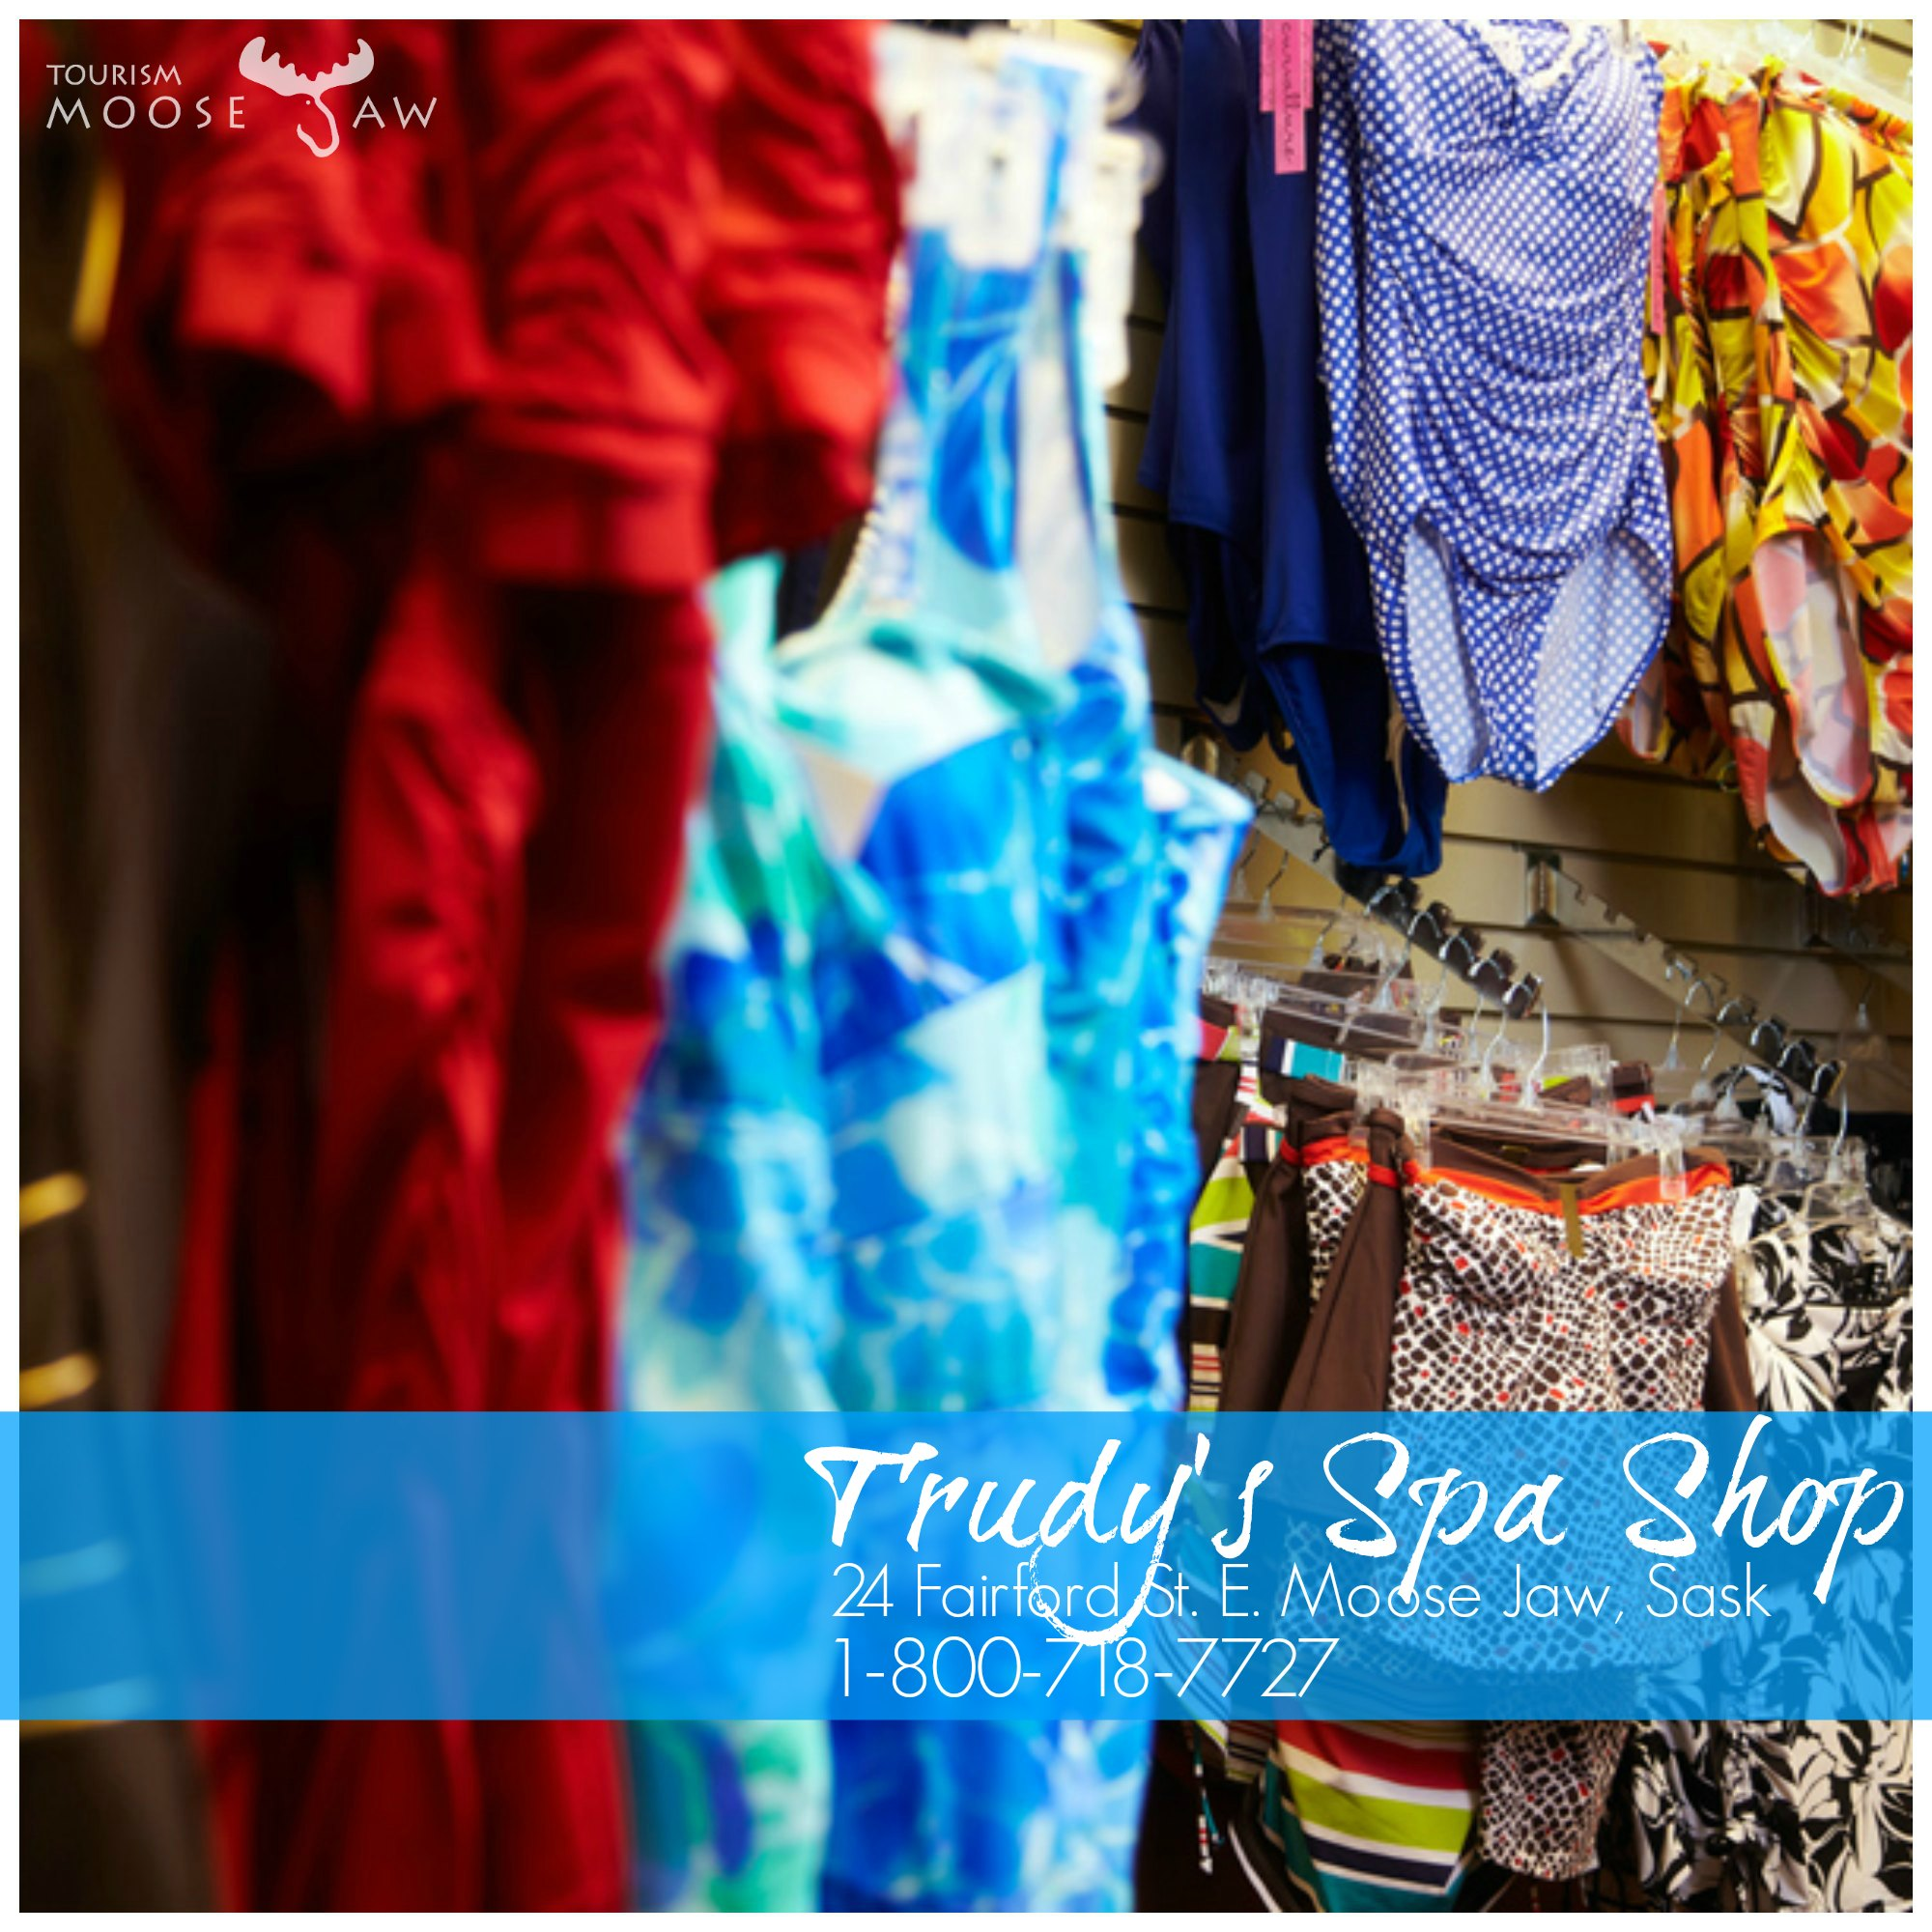 Trudys Spa Shop.jpg